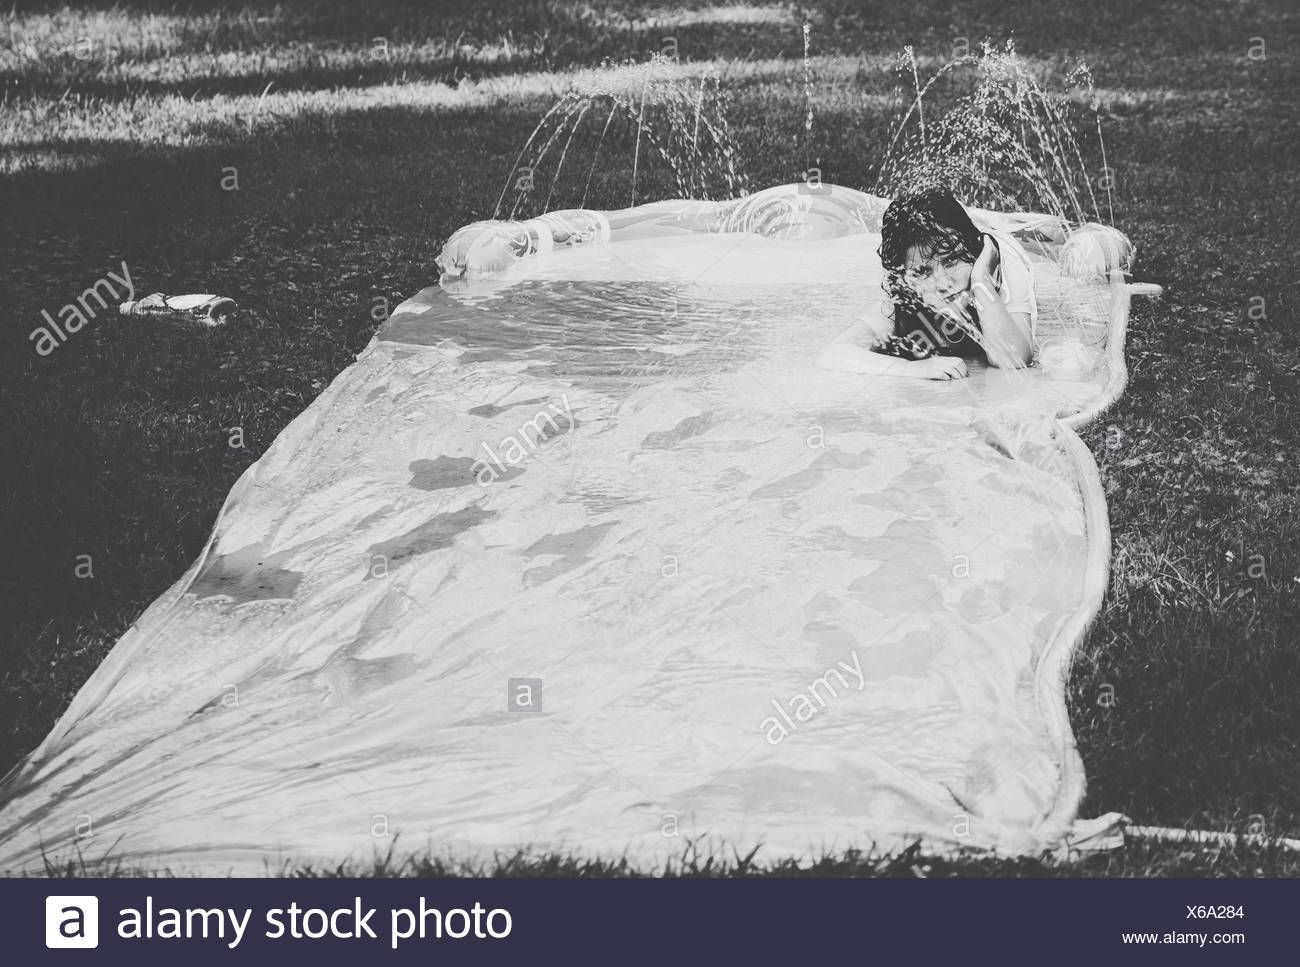 Portrait Of Girl Lying On Water Slide Canvas On Grass In Back Yard Stock Photo